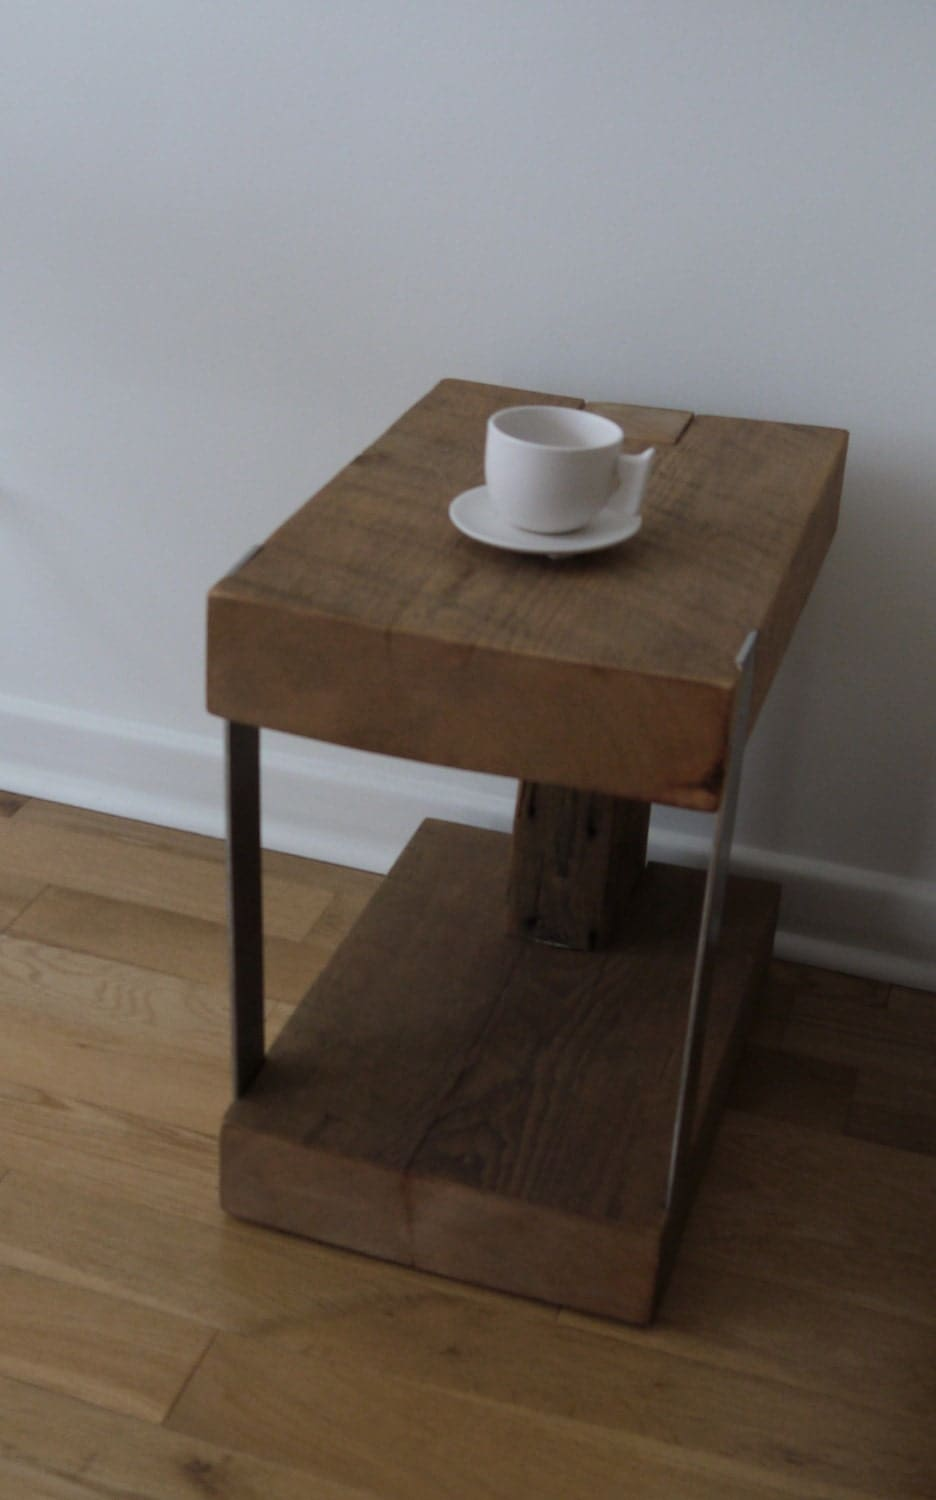 Reclaimed Wood End Tables ~ Reclaimed wood and metal side table modern rustic end